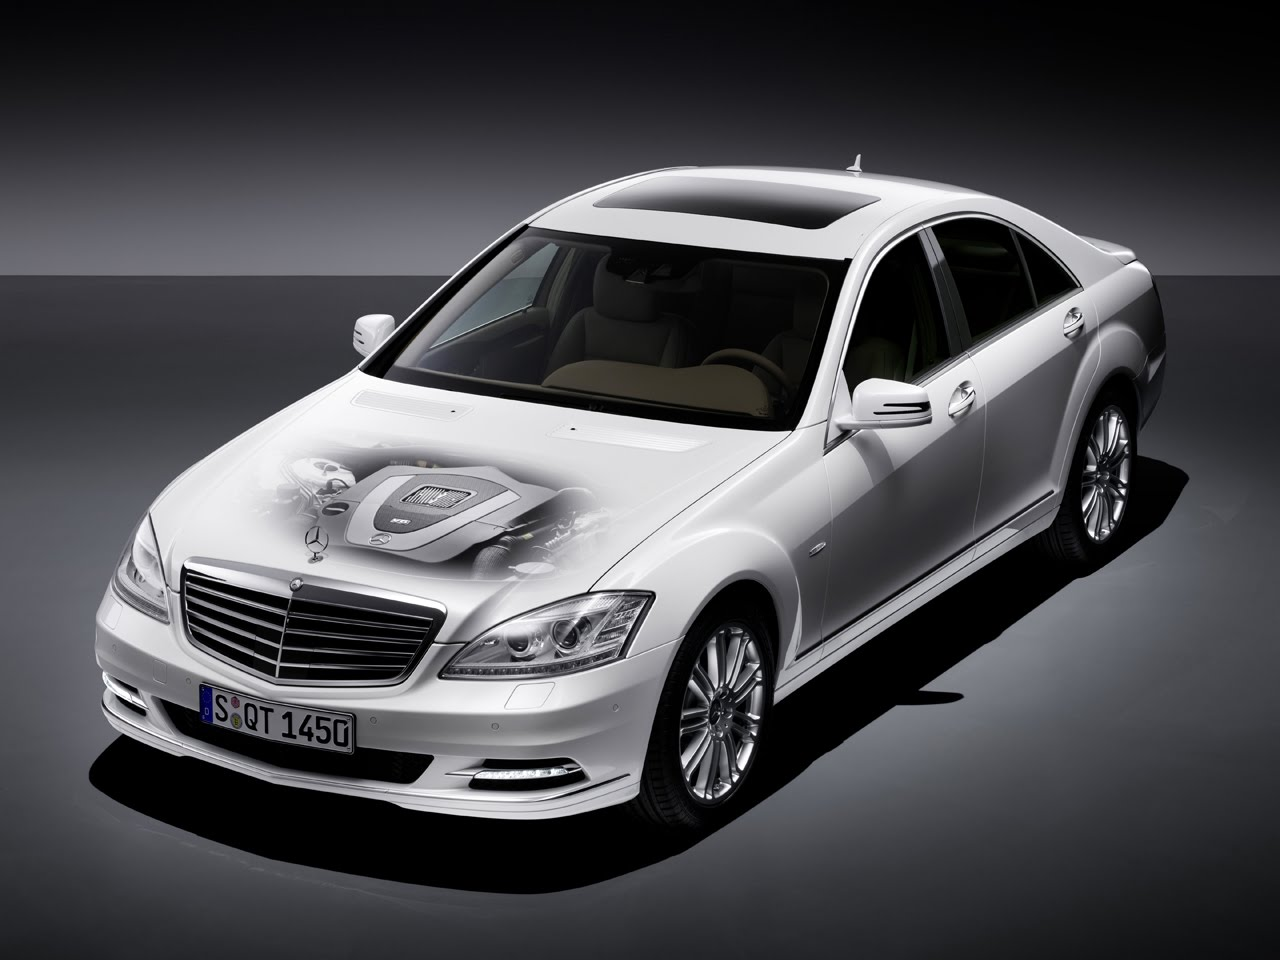 2012 new mercedes benz s400 hybrid car pictures car for Mercedes benz hybrids